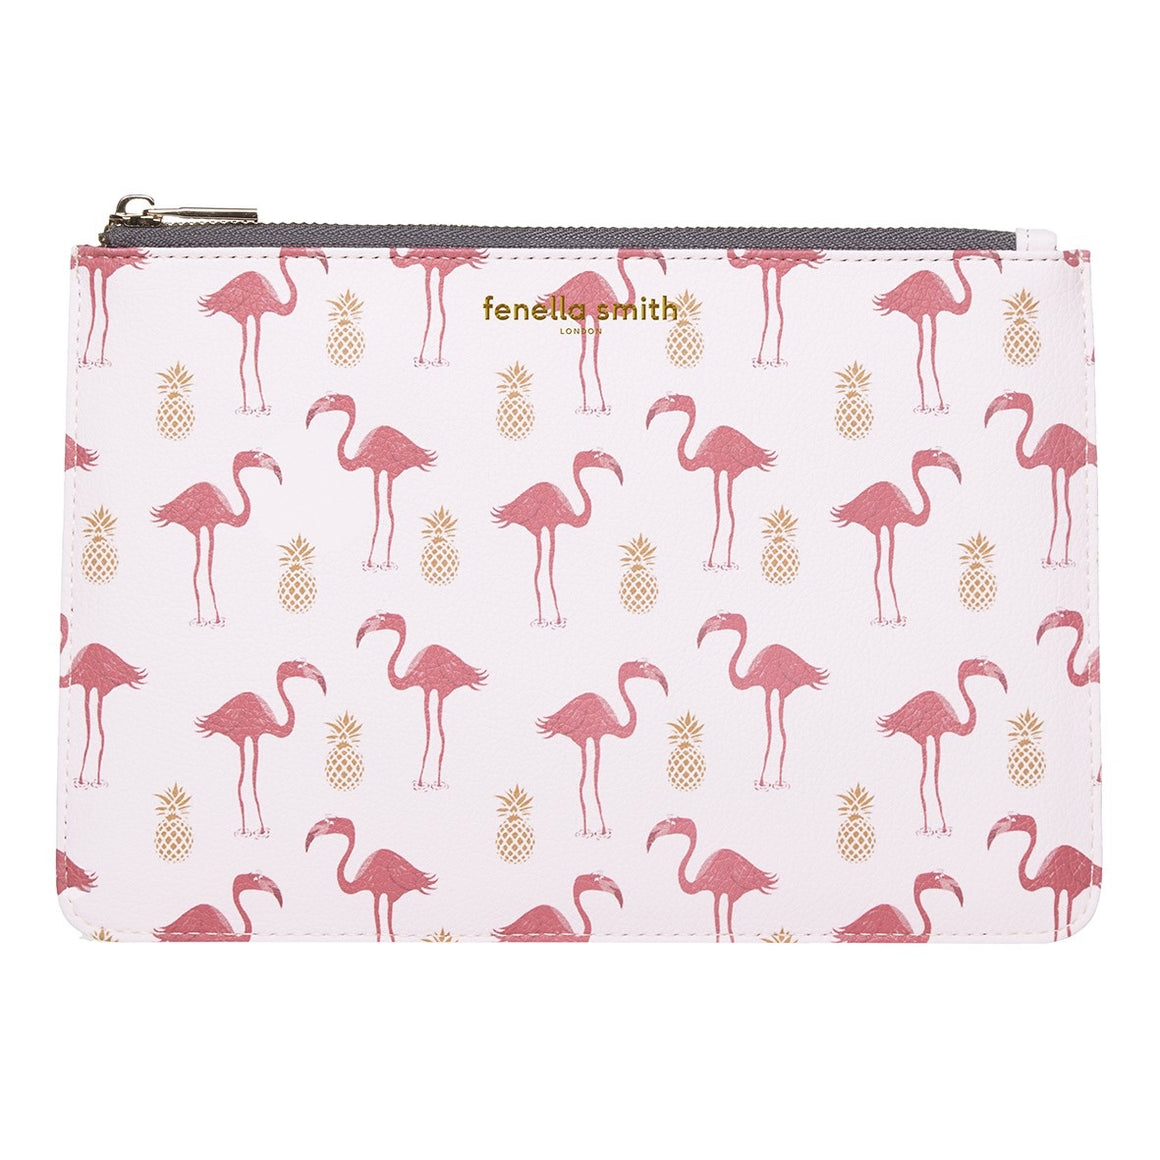 FLAMINGO & PINEAPPLE VEGAN LEATHER CLUTCH BAG